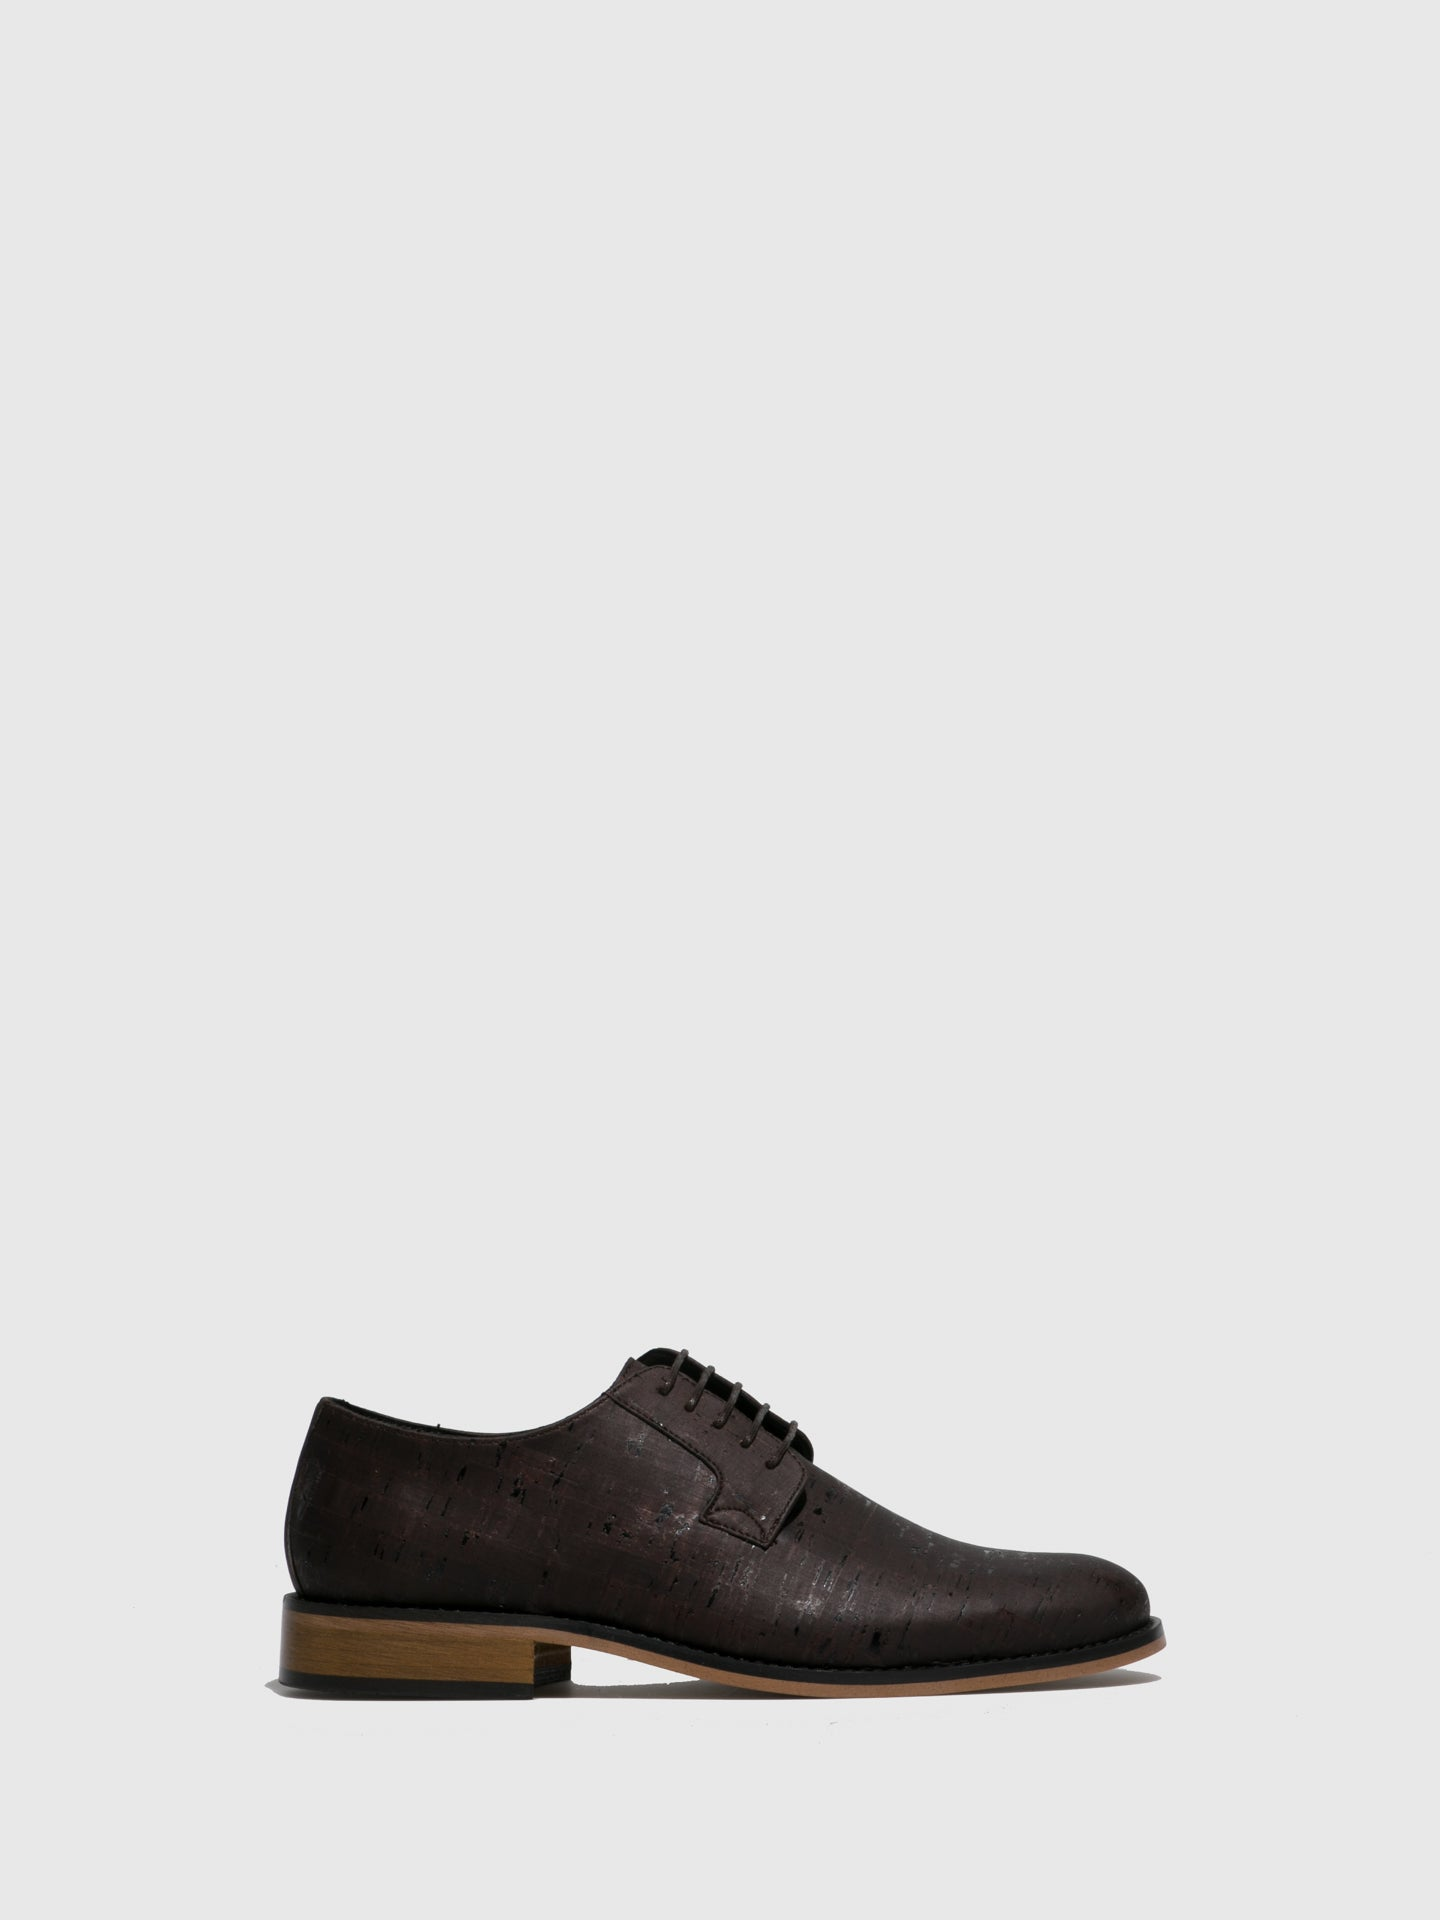 NAE Vegan Shoes Brown Classic Shoes